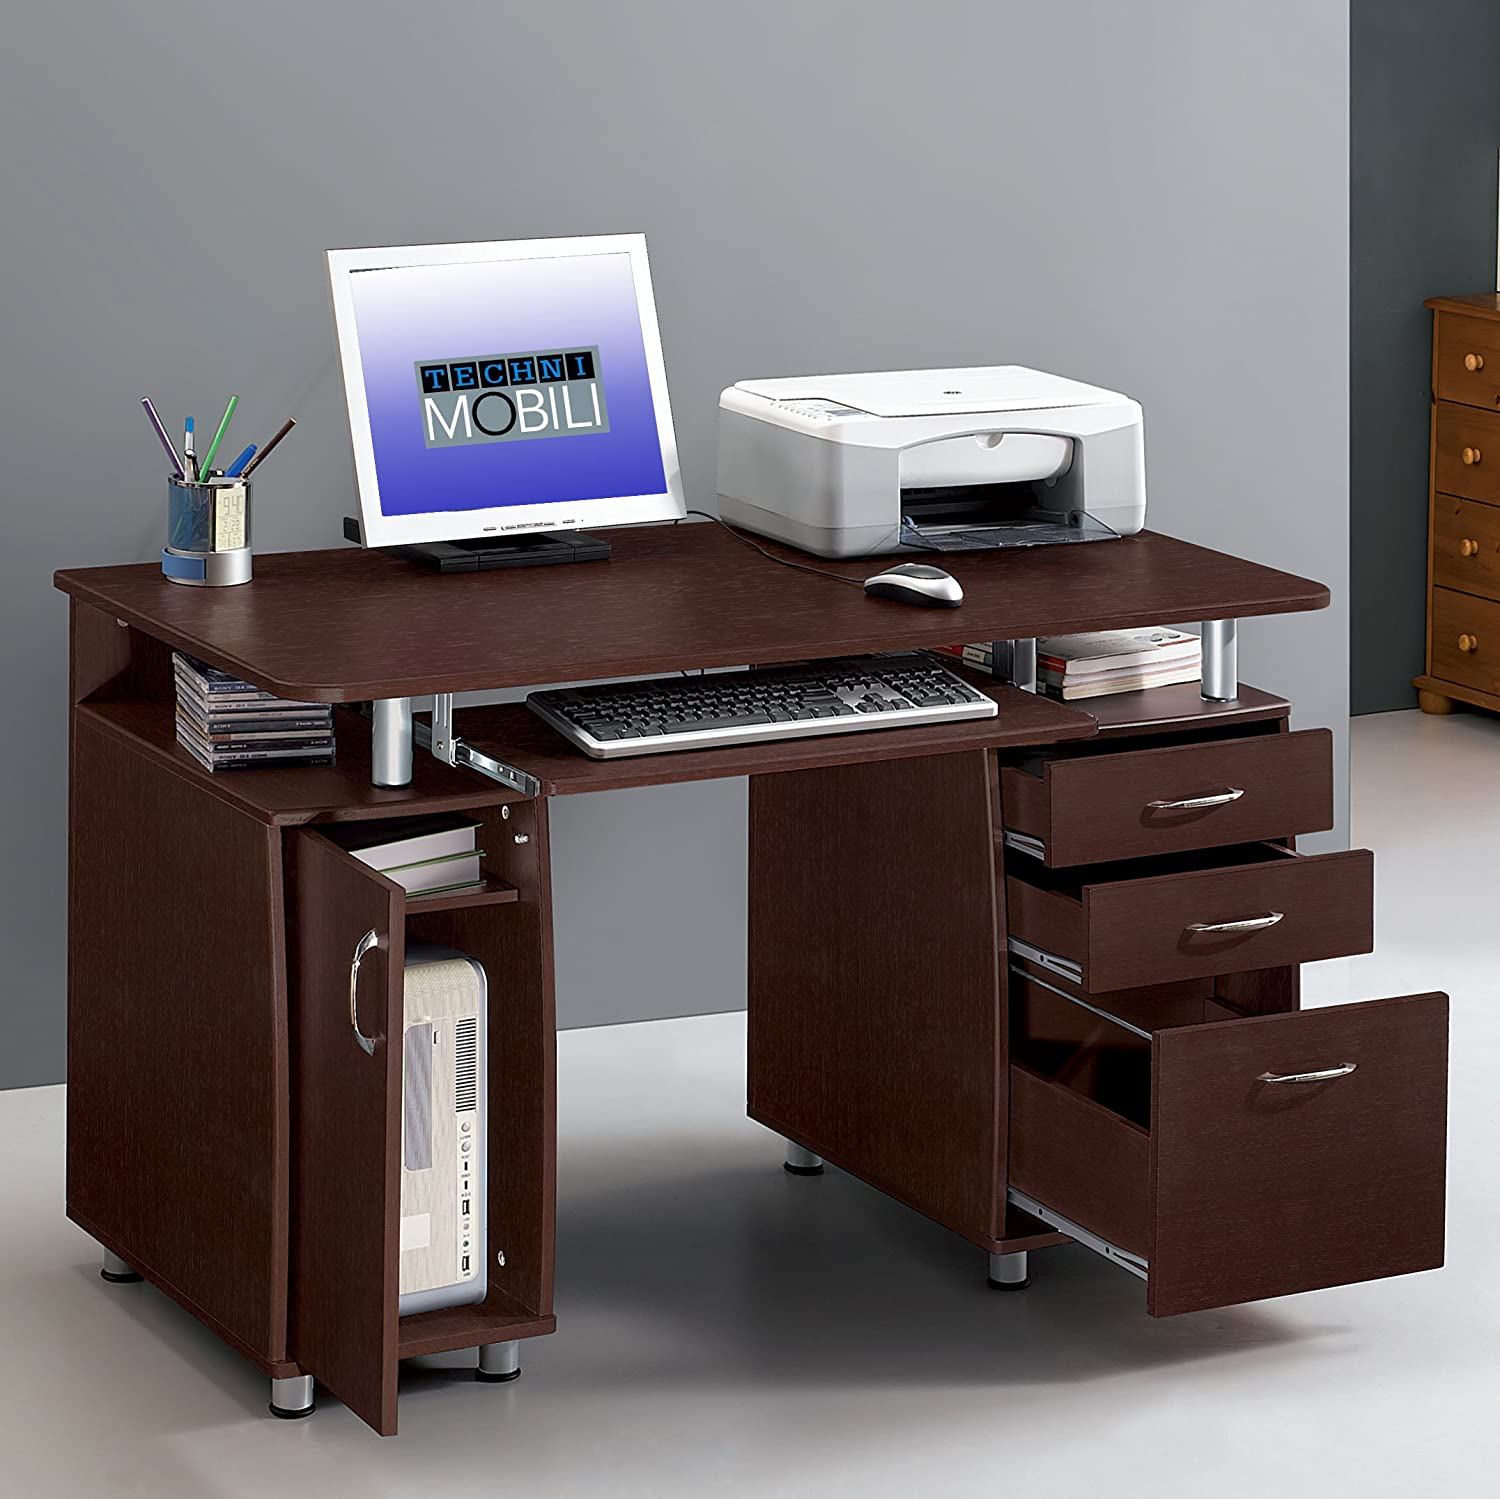 mobili computer luxury attachment drawers puter techni desk of should choose with